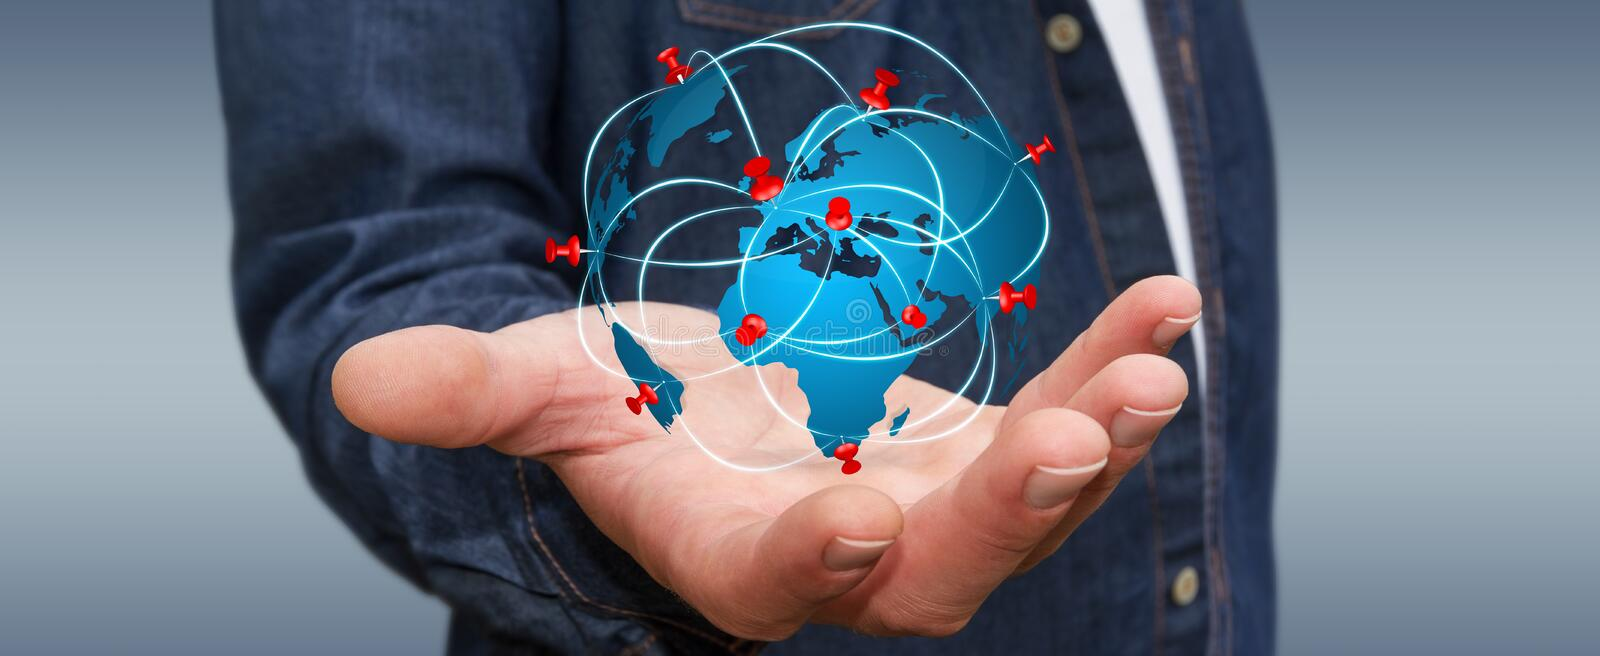 Businessman holding digital world map in his hands stock download businessman holding digital world map in his hands stock illustration illustration of innovate gumiabroncs Choice Image